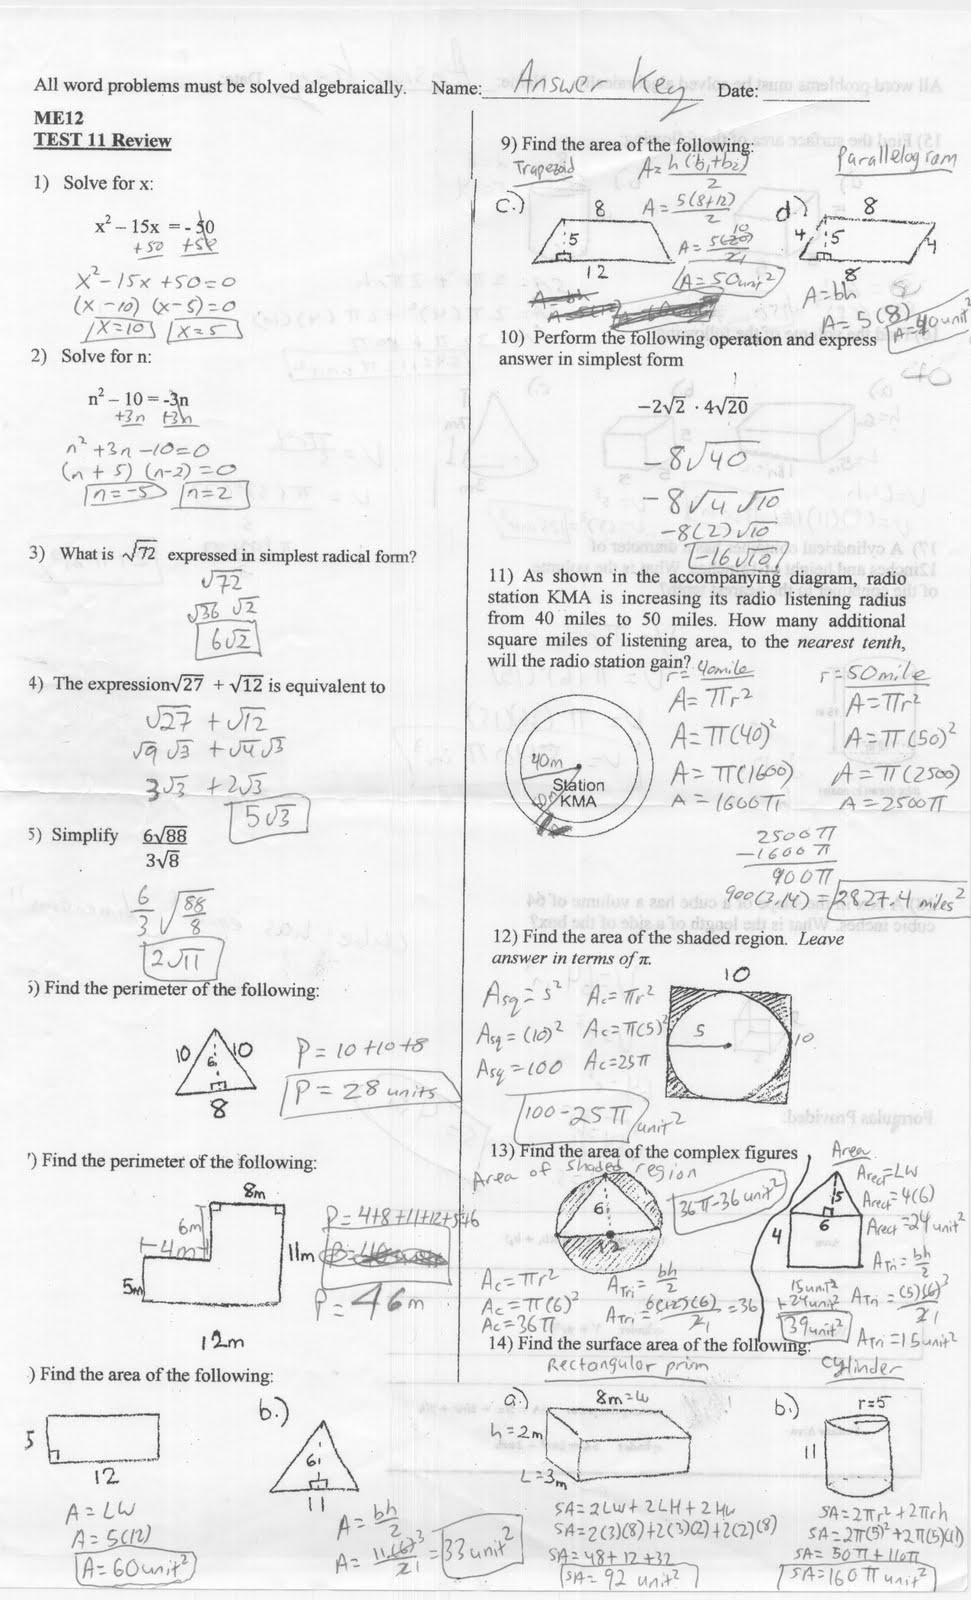 Mr. Napoli's Algebra: Aim Test 11 Review